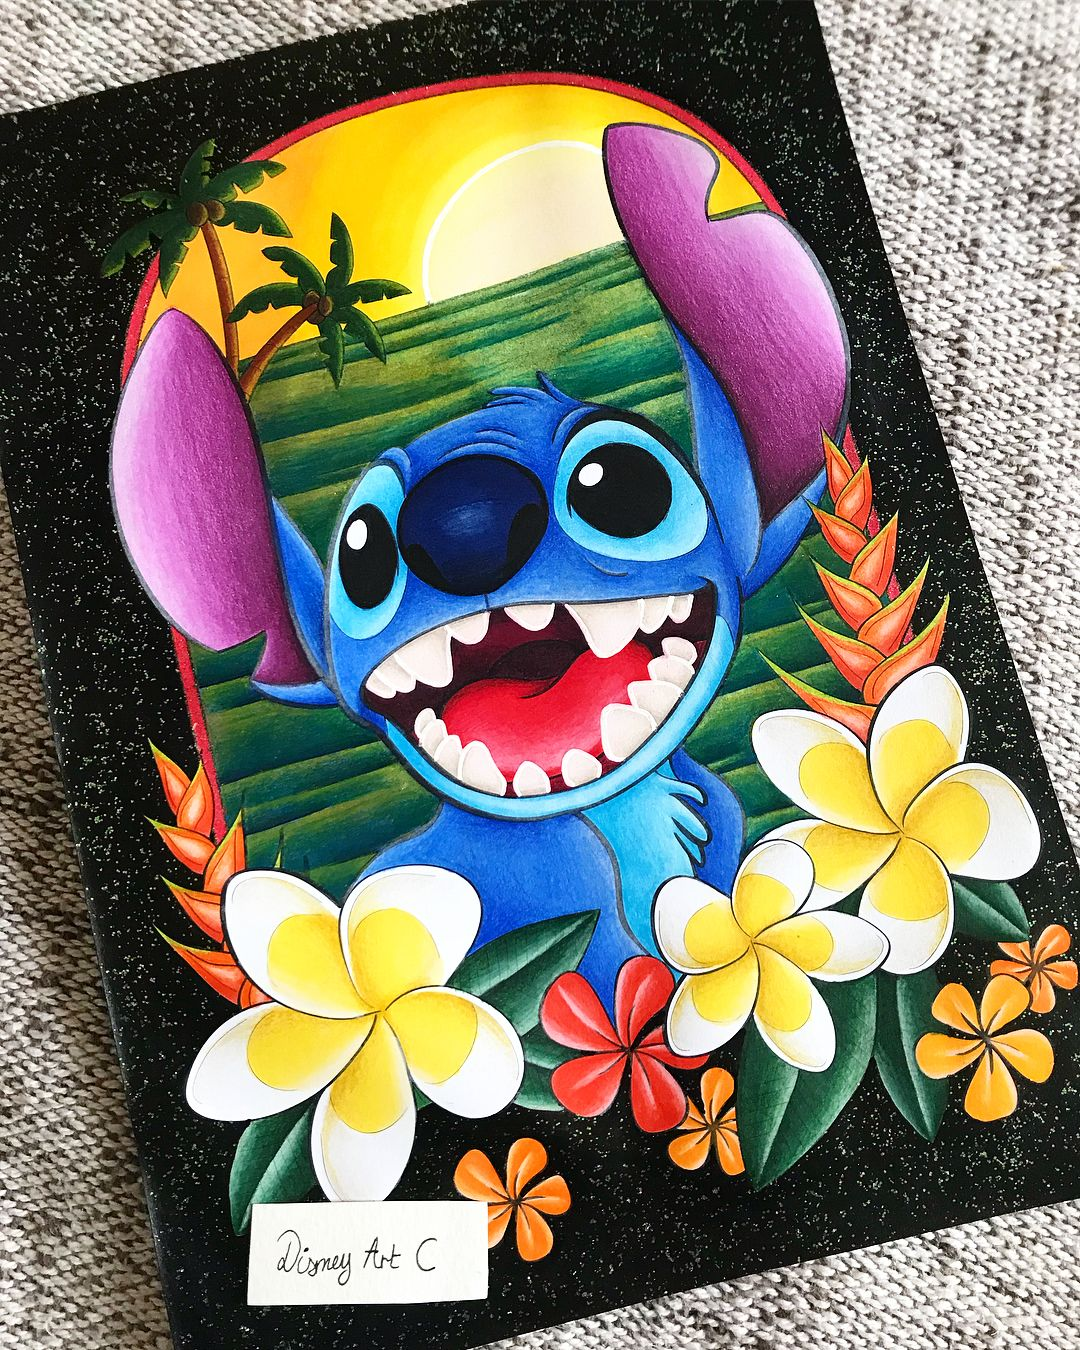 Disney Art C sur Instagram : « Aloha ! » Stitch